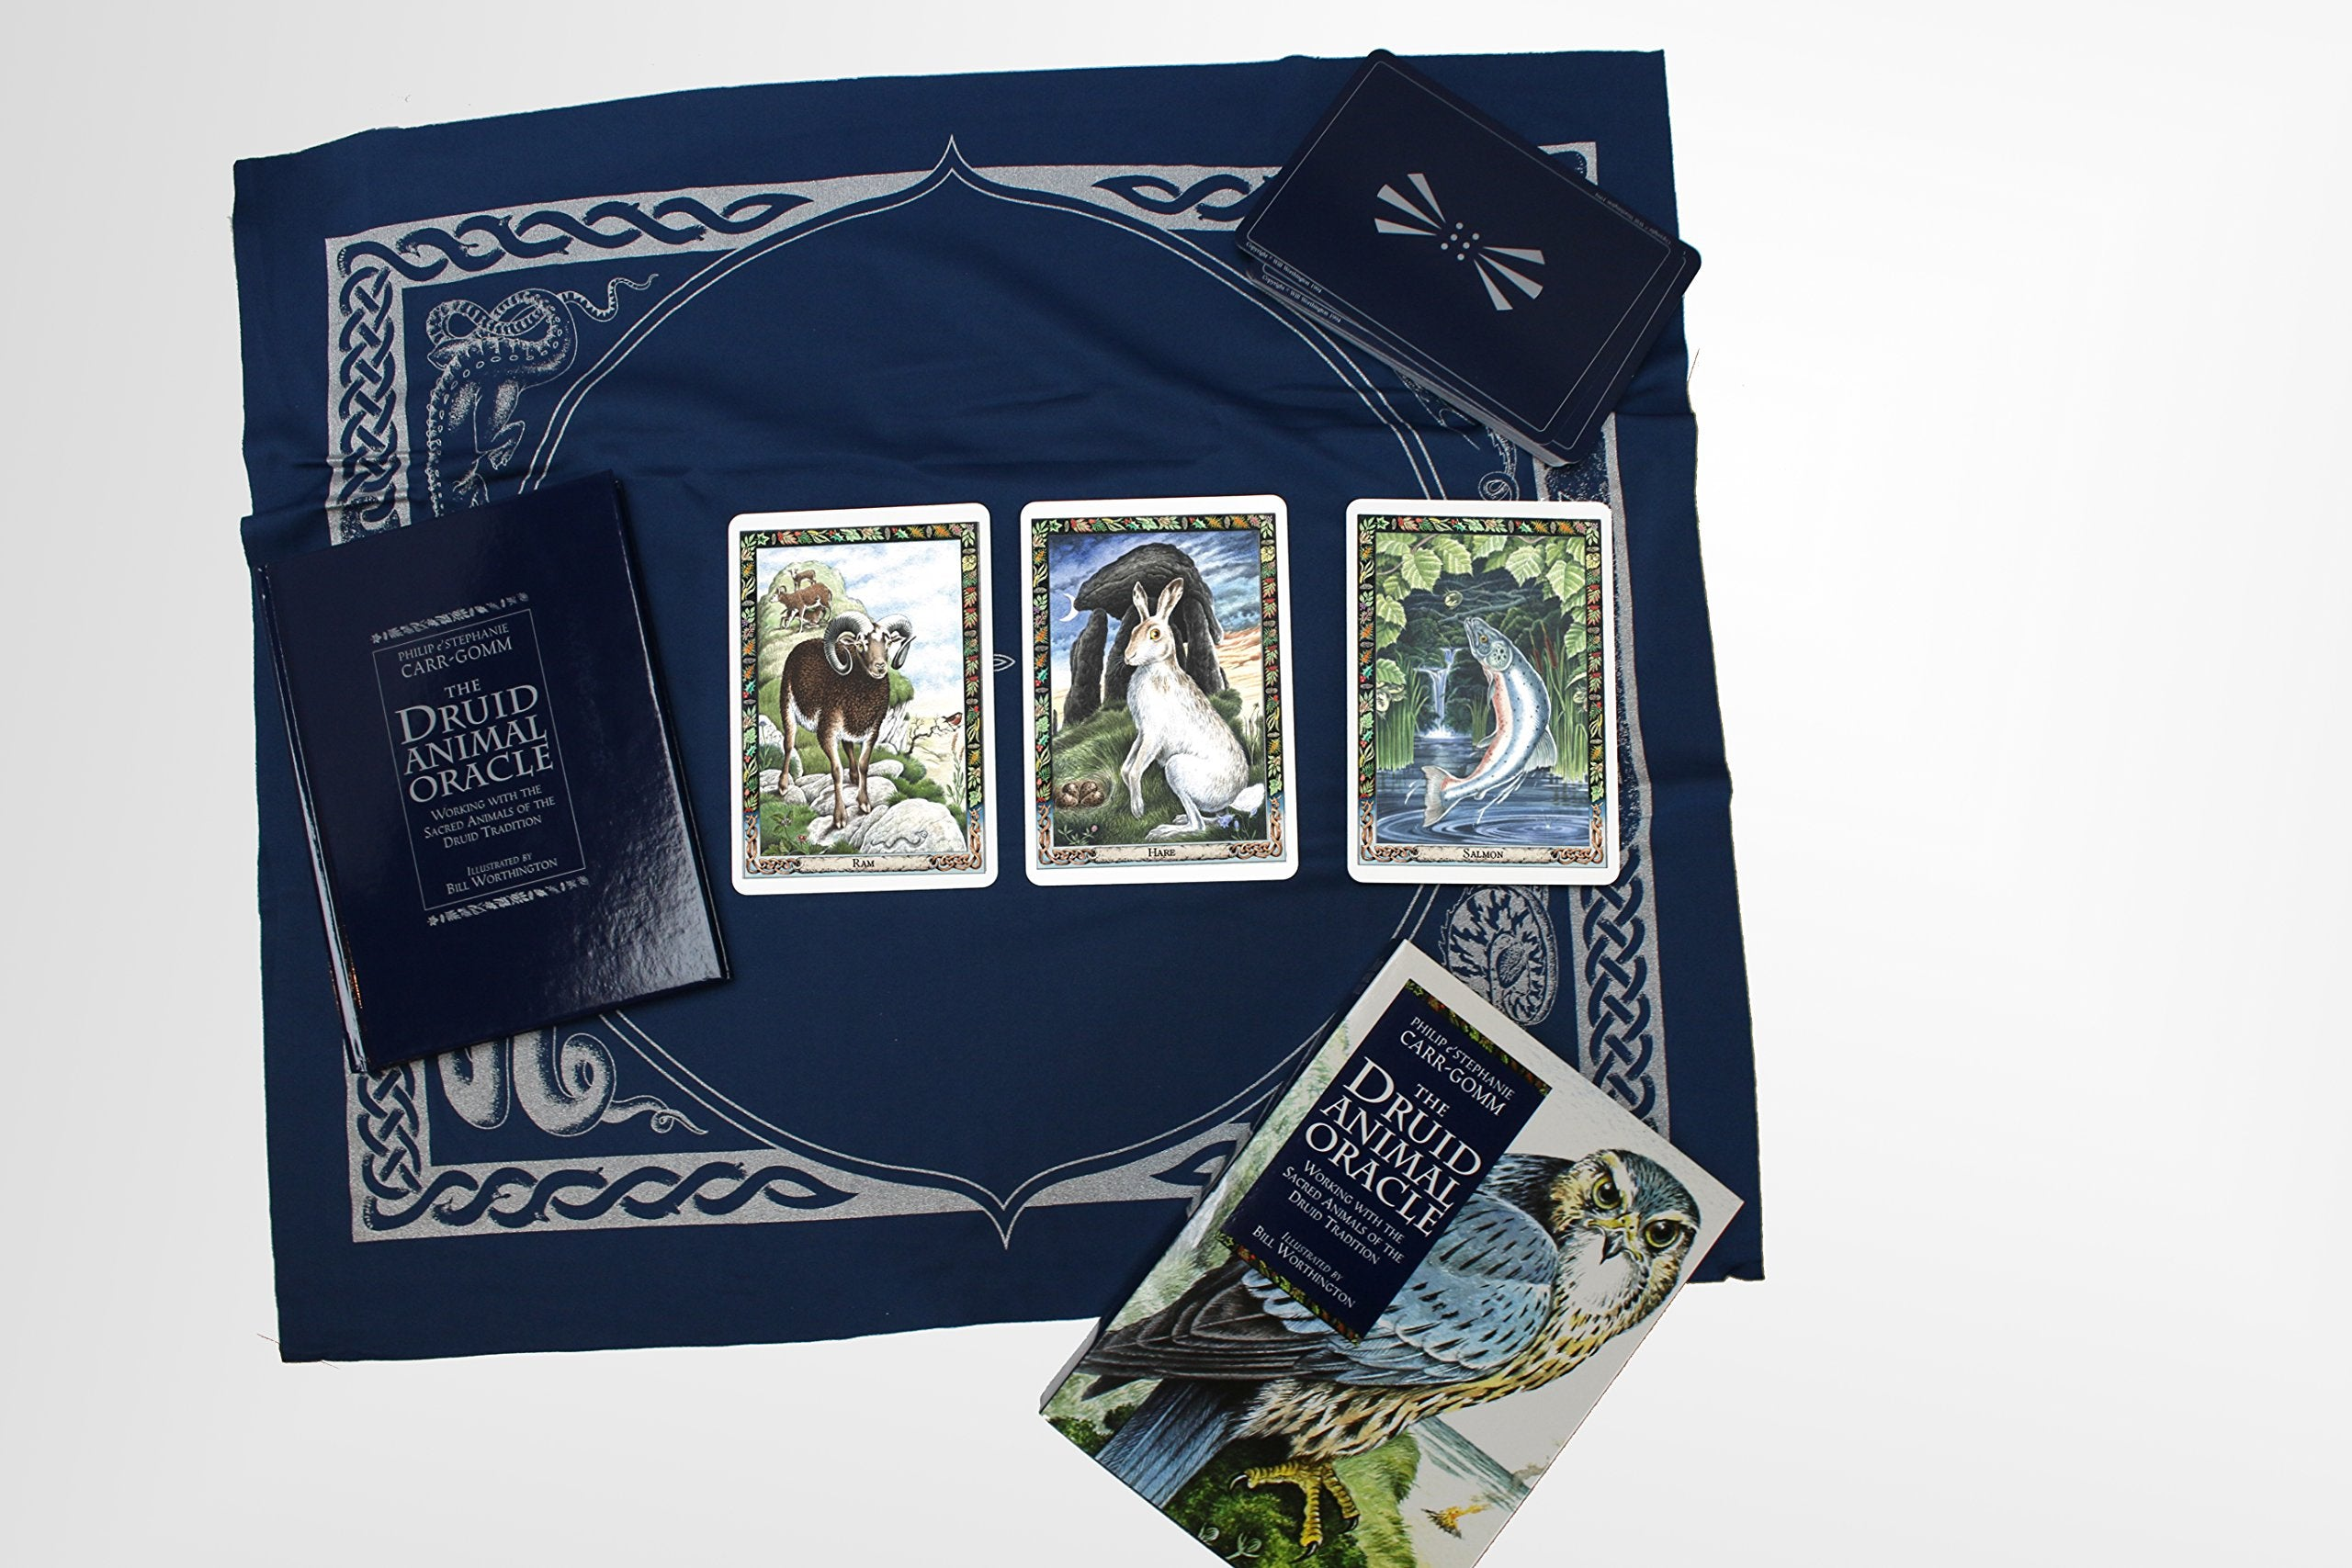 The Druid Animal Oracle Cards Deck & Book (Carr-Gomm & Carr-Gomm)